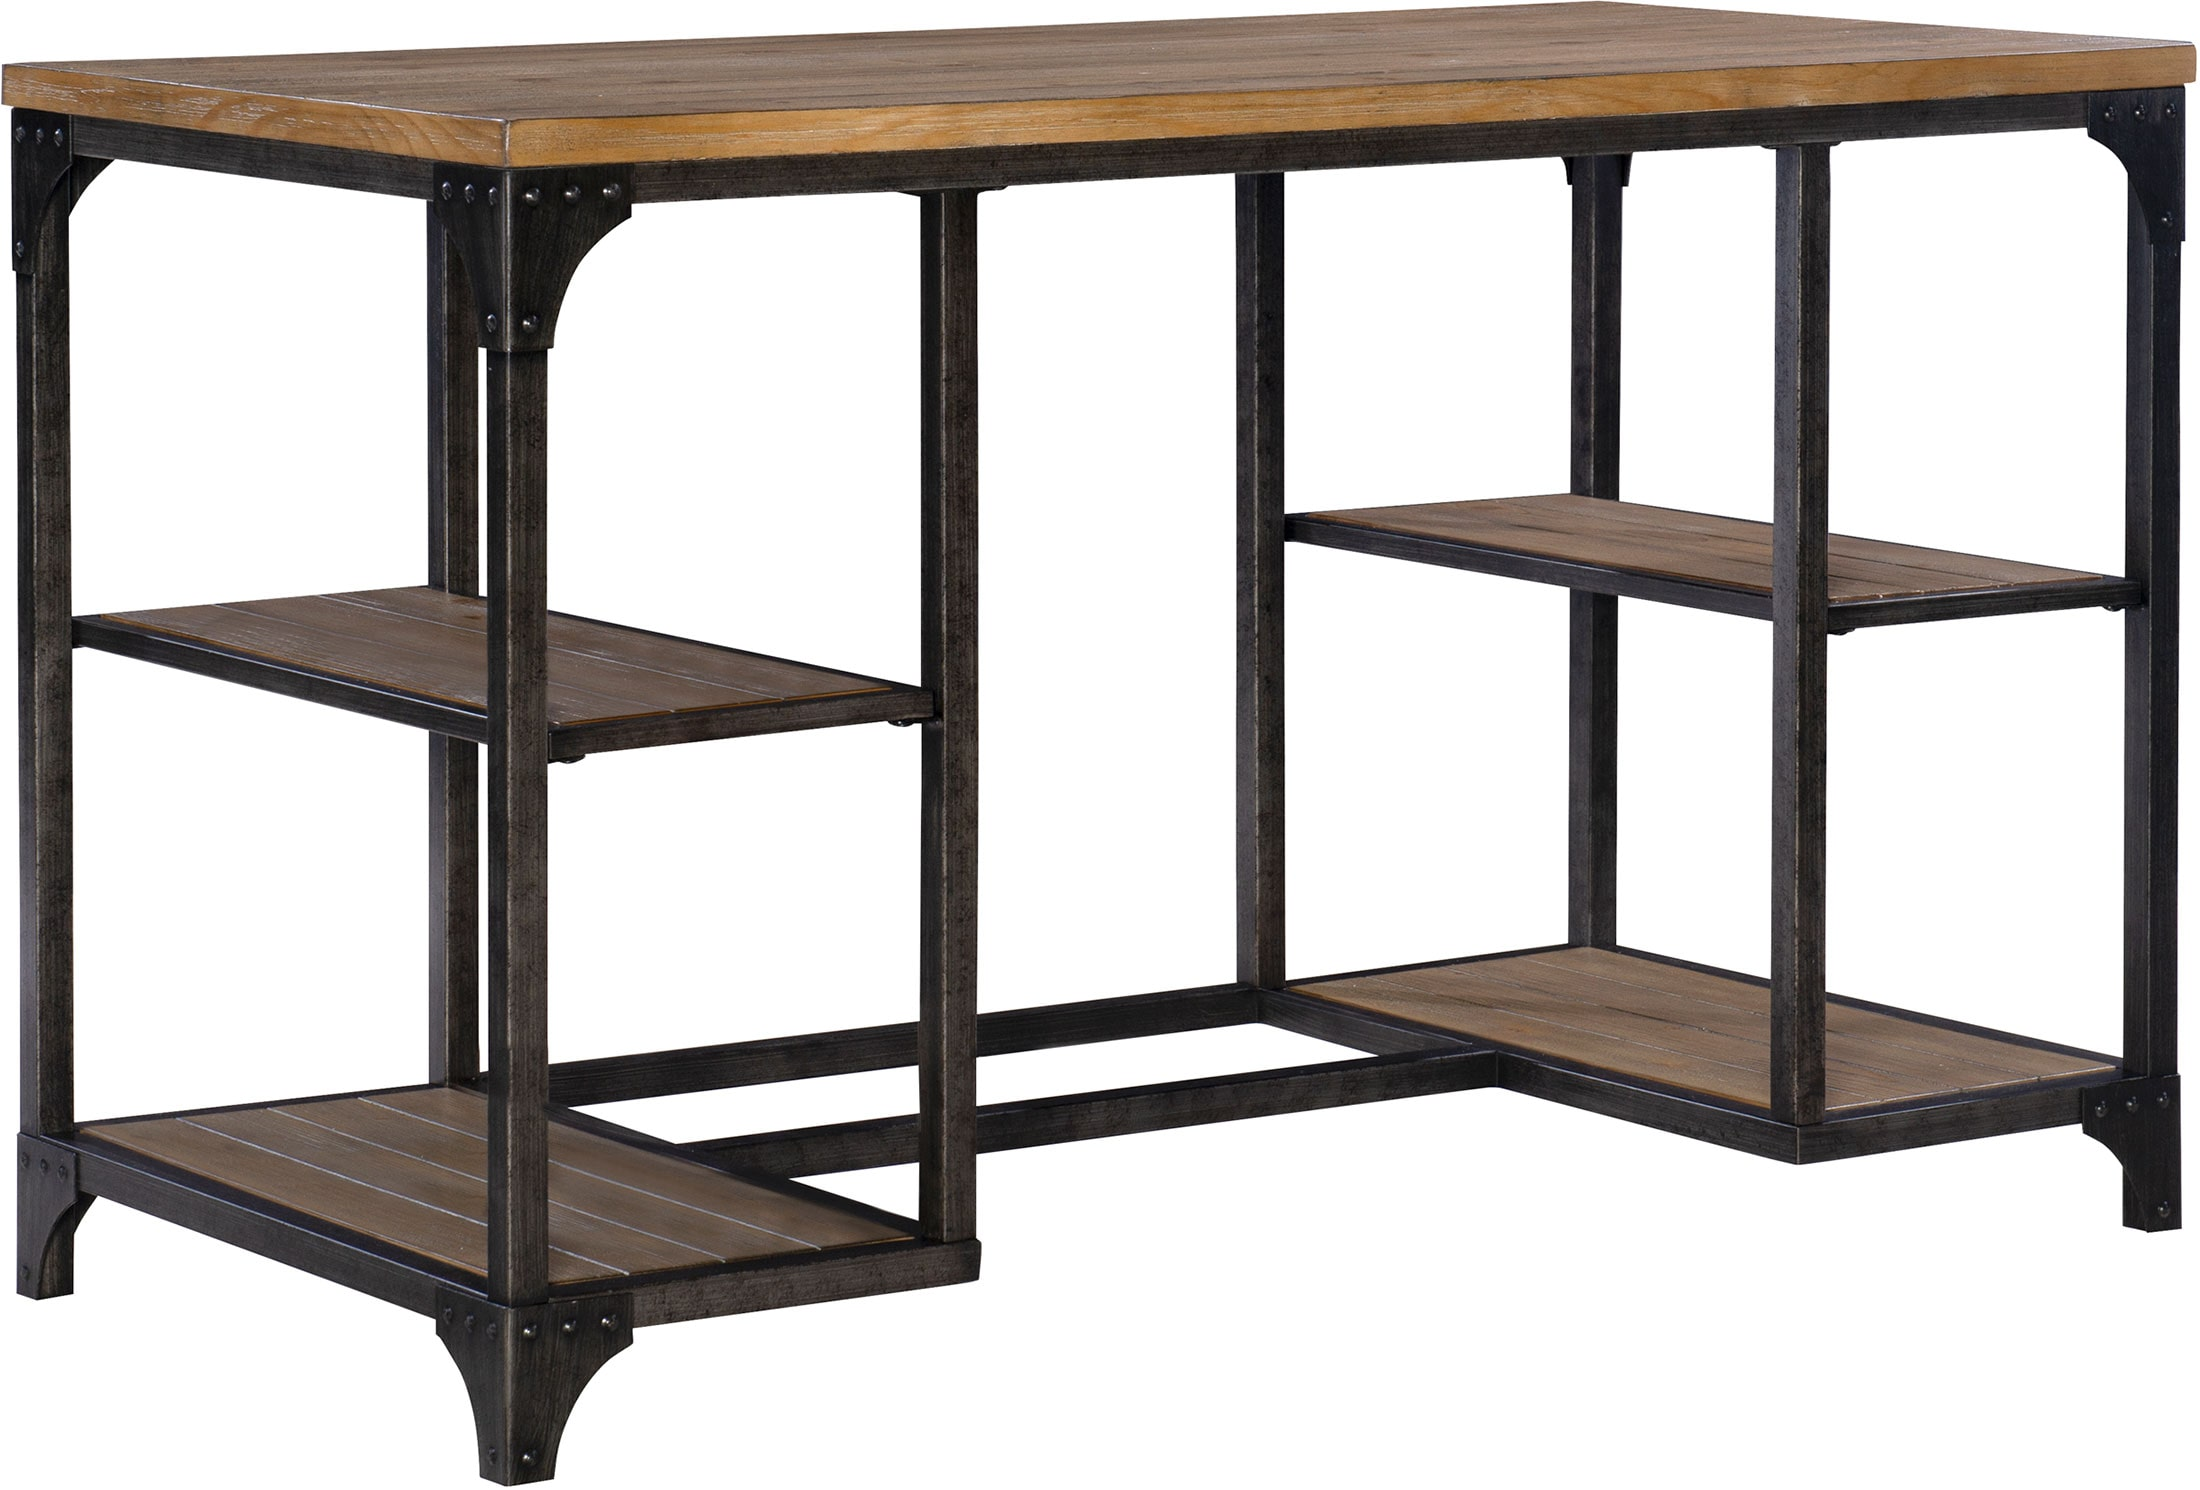 Home Office Furniture - Ridge Desk